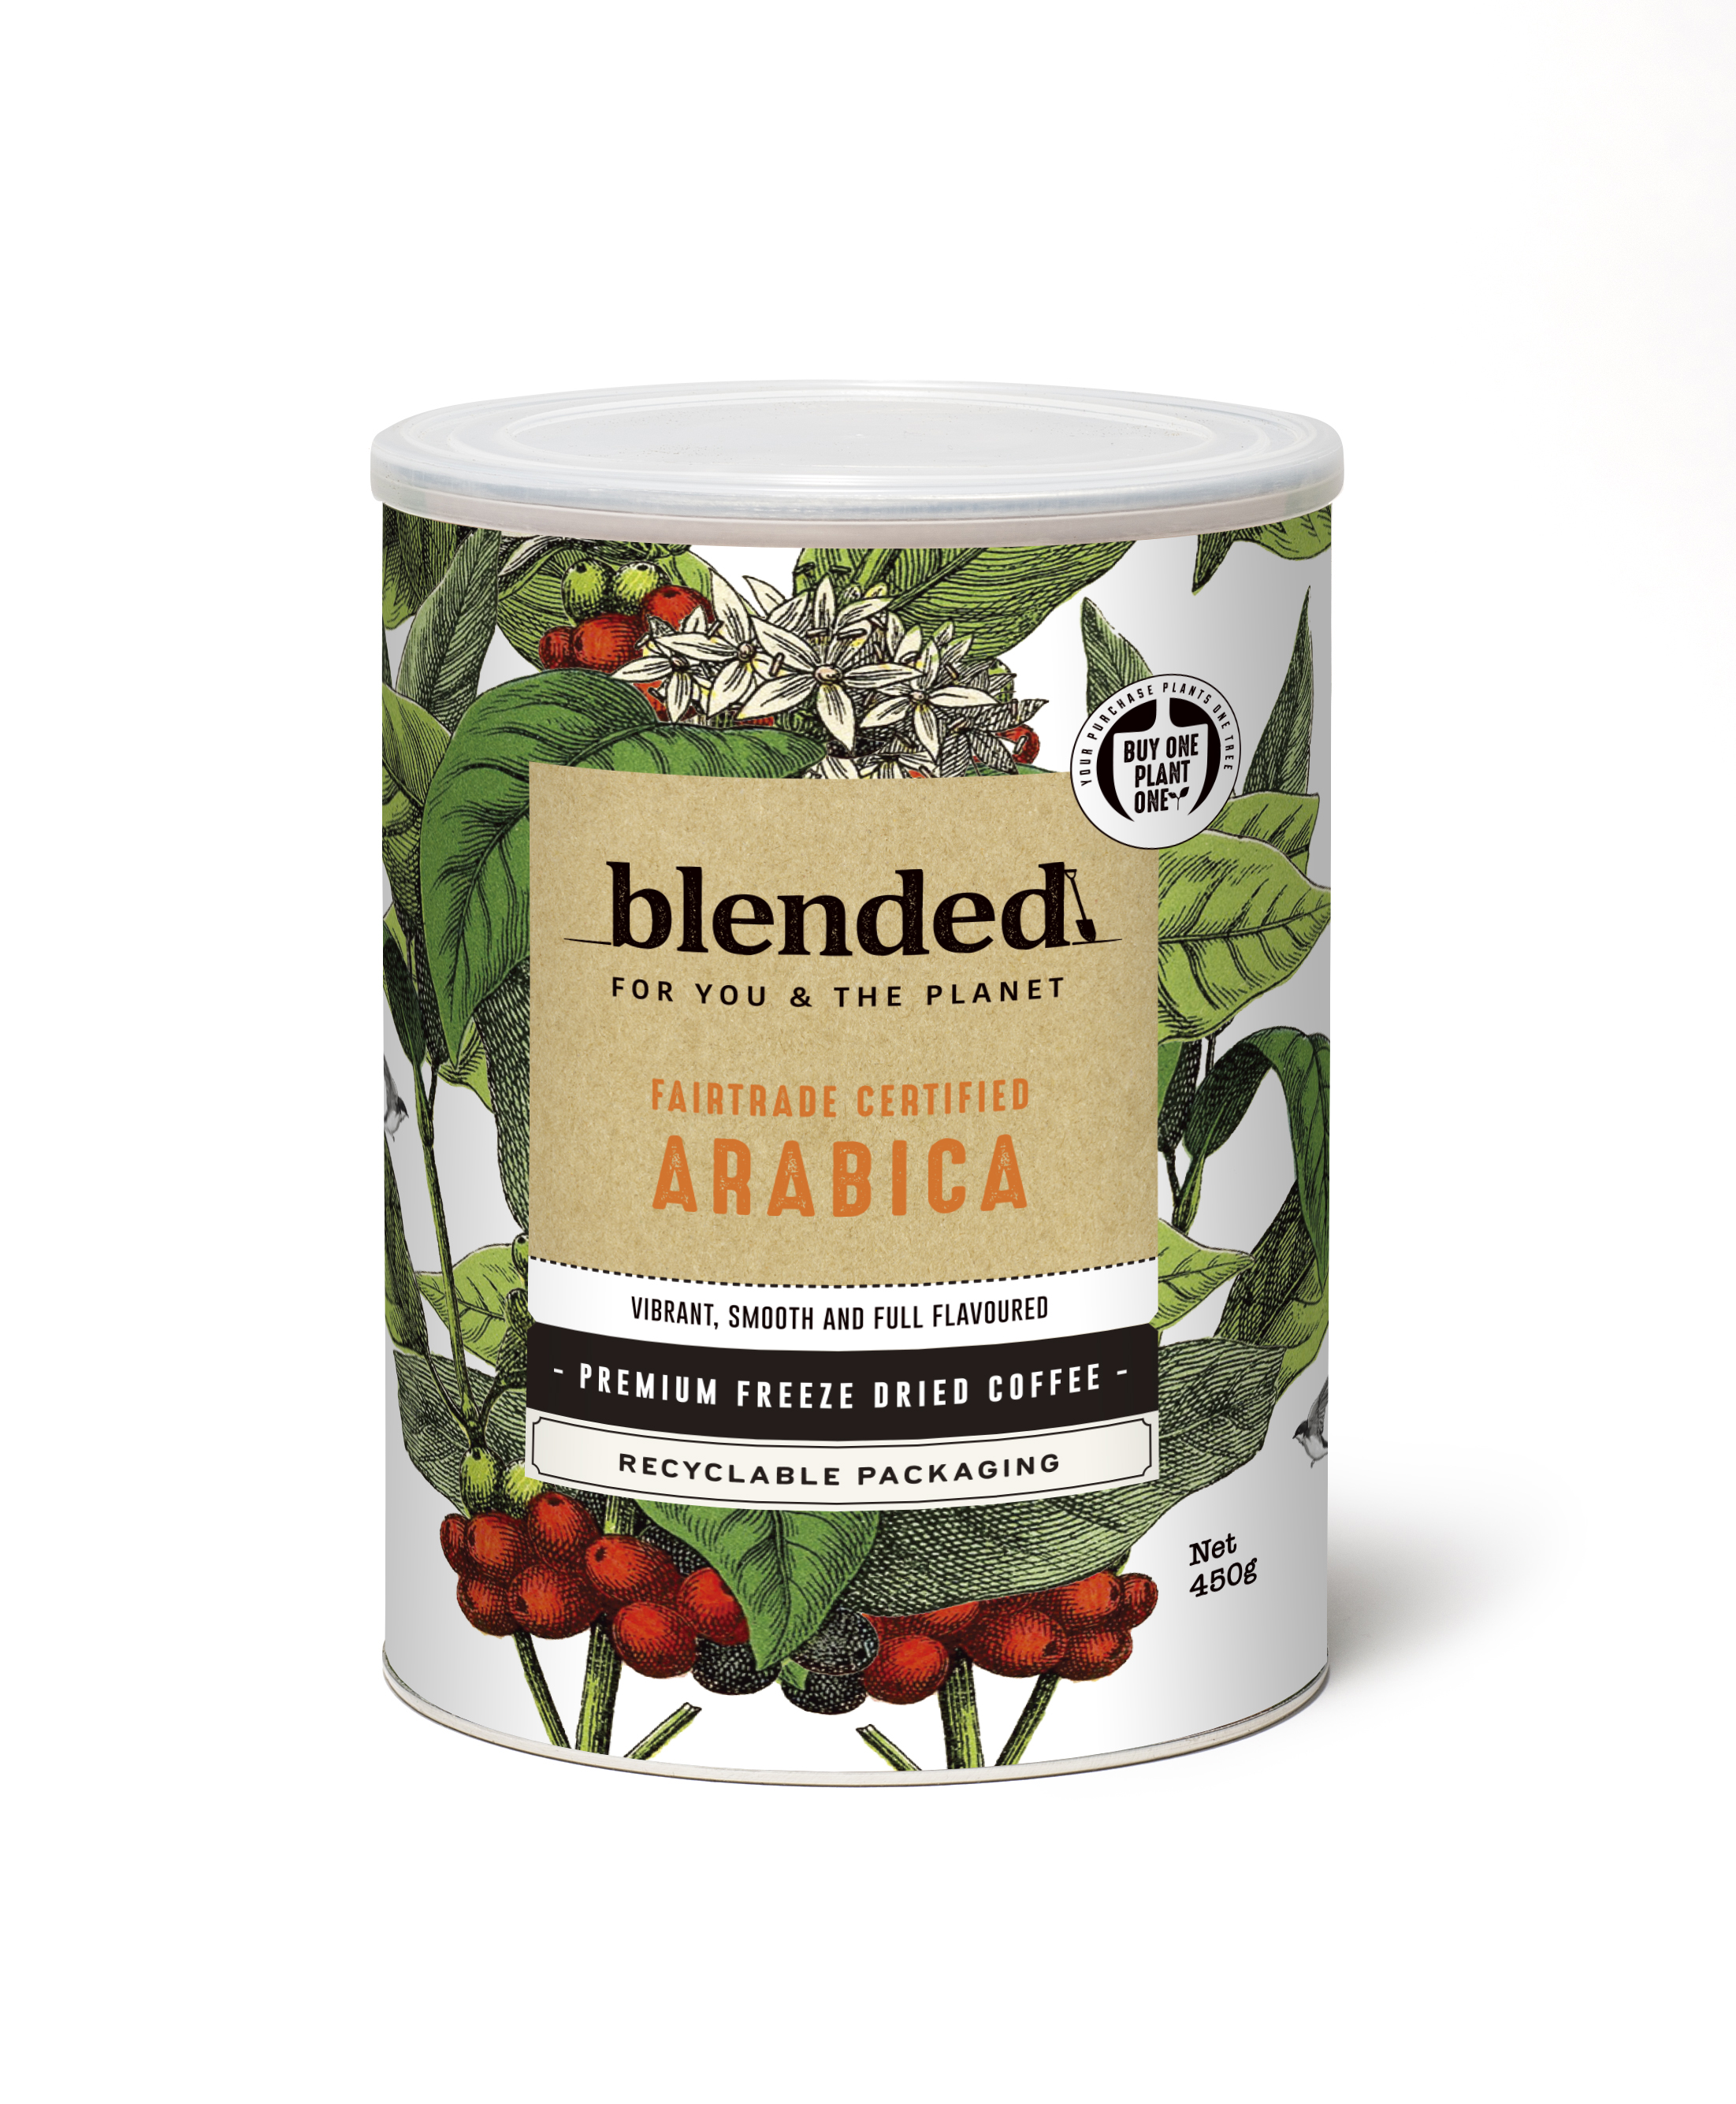 blended_Instant coffee 450g_fairtrade_arabica.jpg